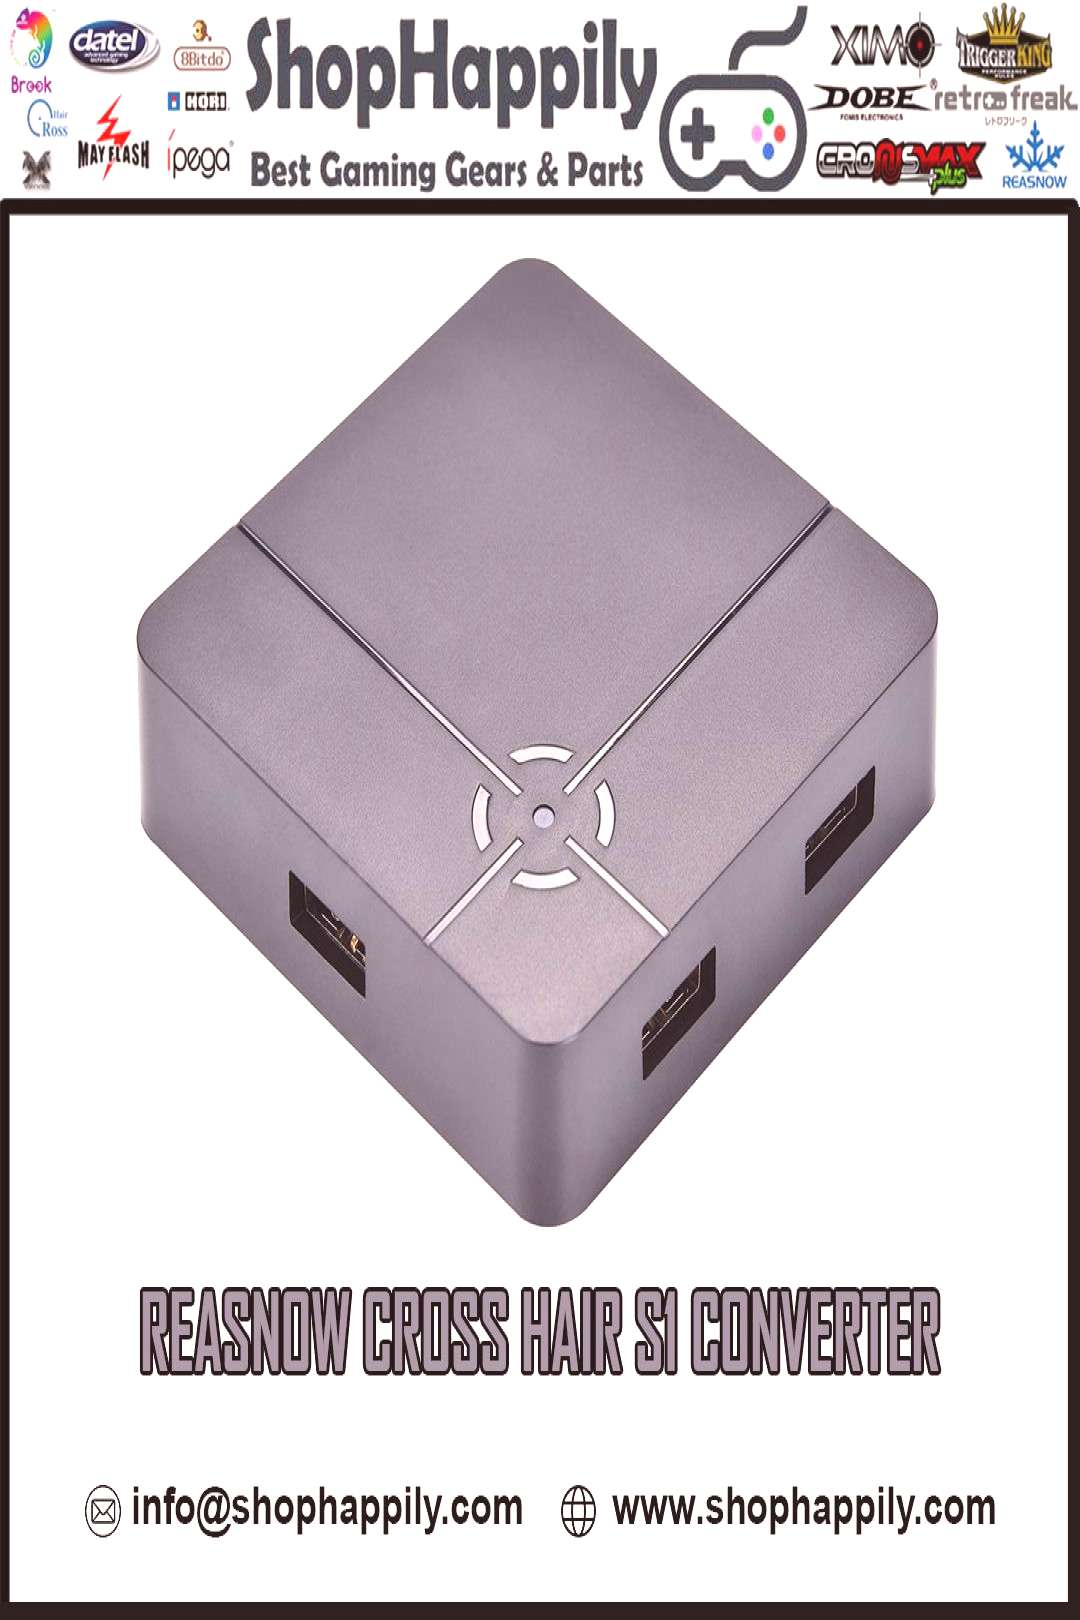 BUY REASNOW CROSSHAIR S1 CONVERTER All-round converter, most of the consoles in the market are comp